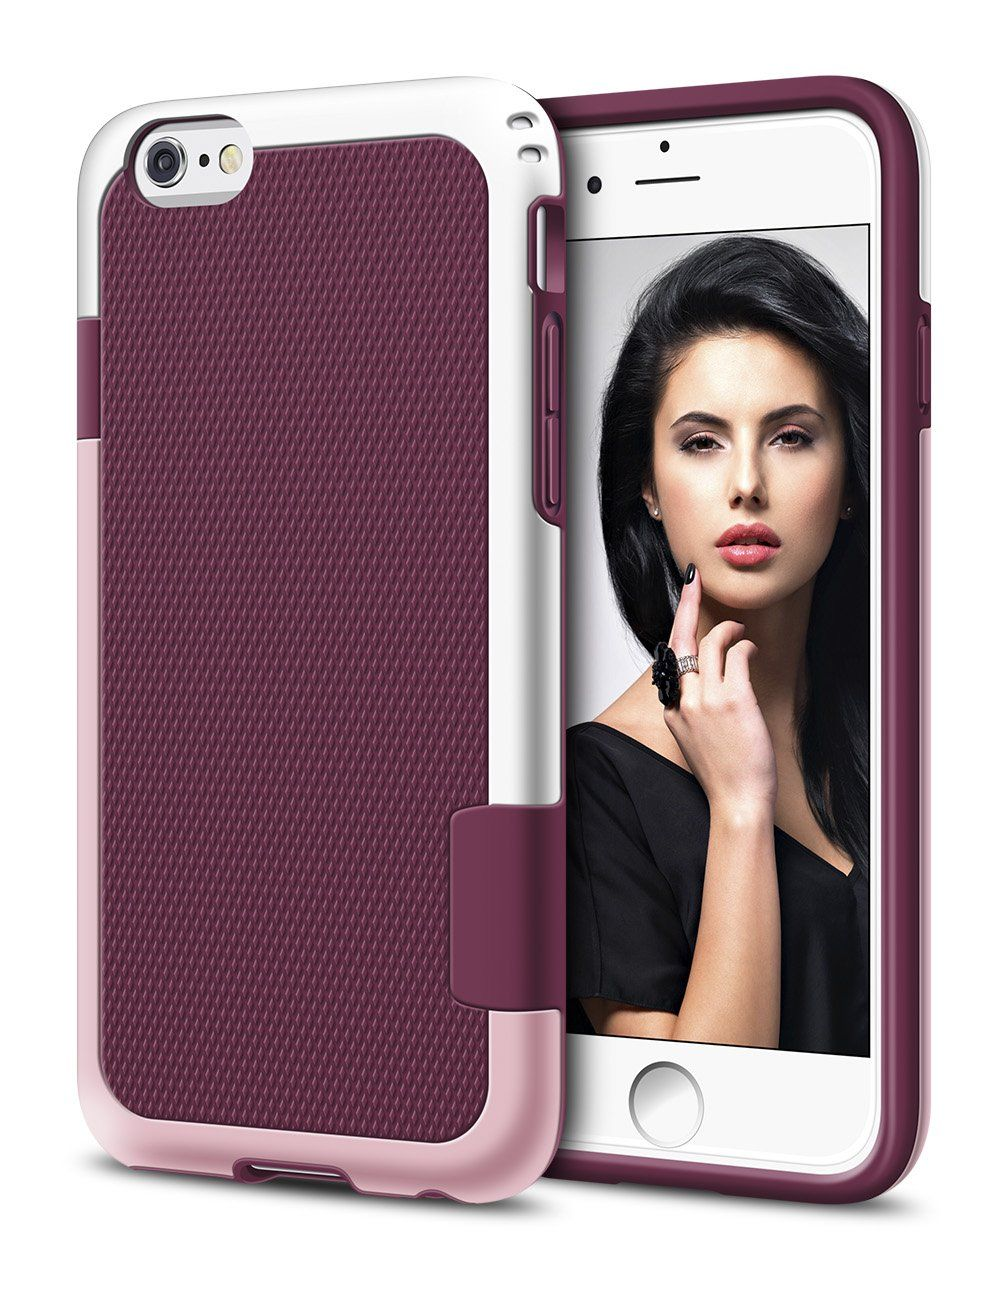 Iphone 6 Plus Case Lohi Shockproof Rugged Case Soft Tpu Hard Pc Bumper For Iphone 6 6s Plus Iphone Iphone Cases Iphone 6 Plus Case